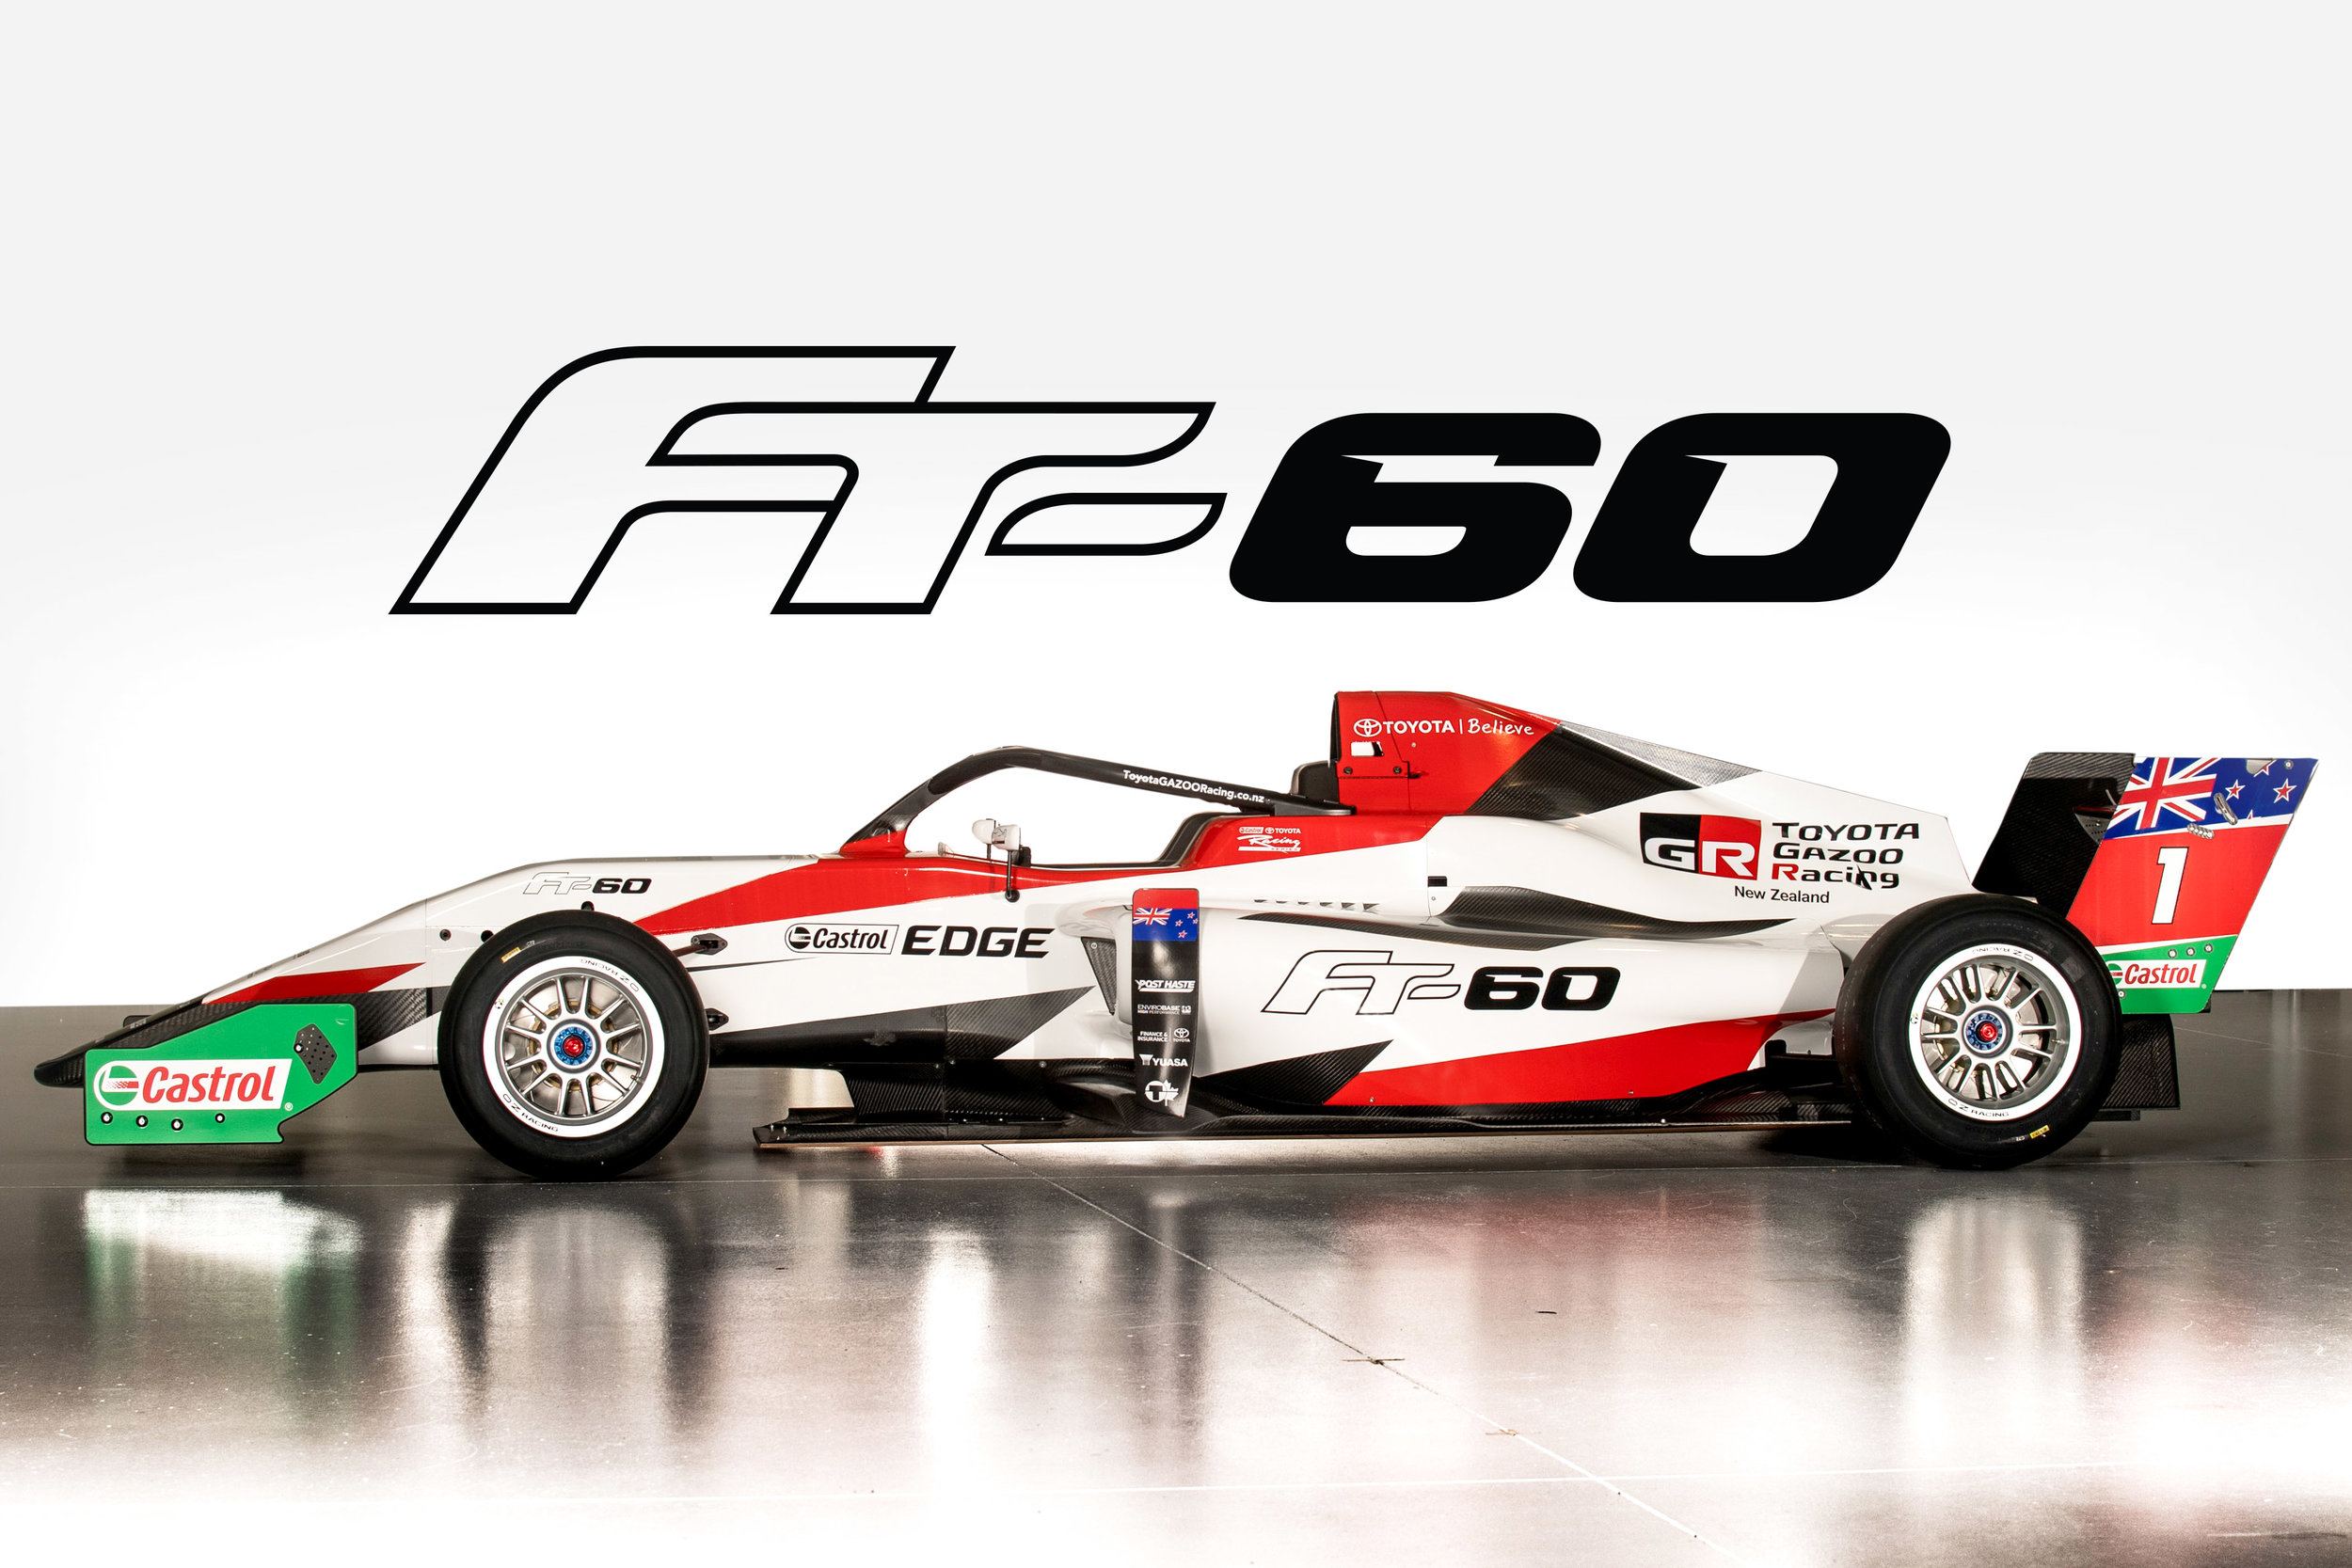 Picture 1 - FT-60 with logo.jpg